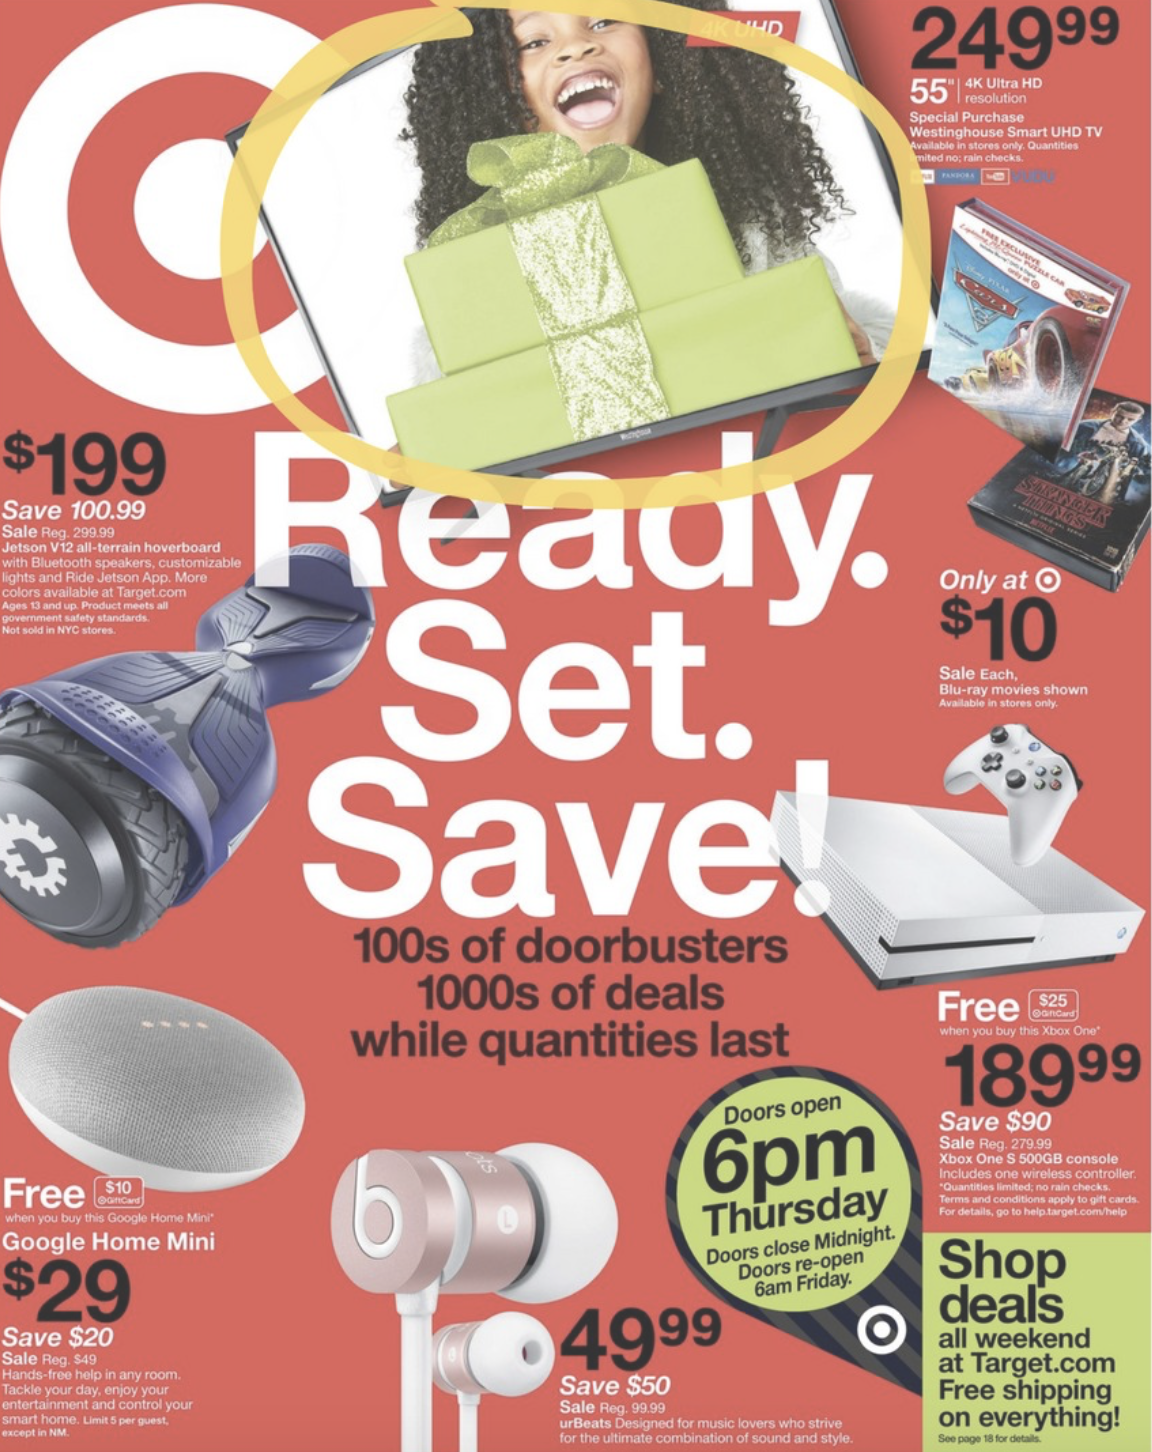 target, black, Friday, 2017, ad, deals, sales, hours, iPhone, tv, iPad, xbox, one, gaming, consoles